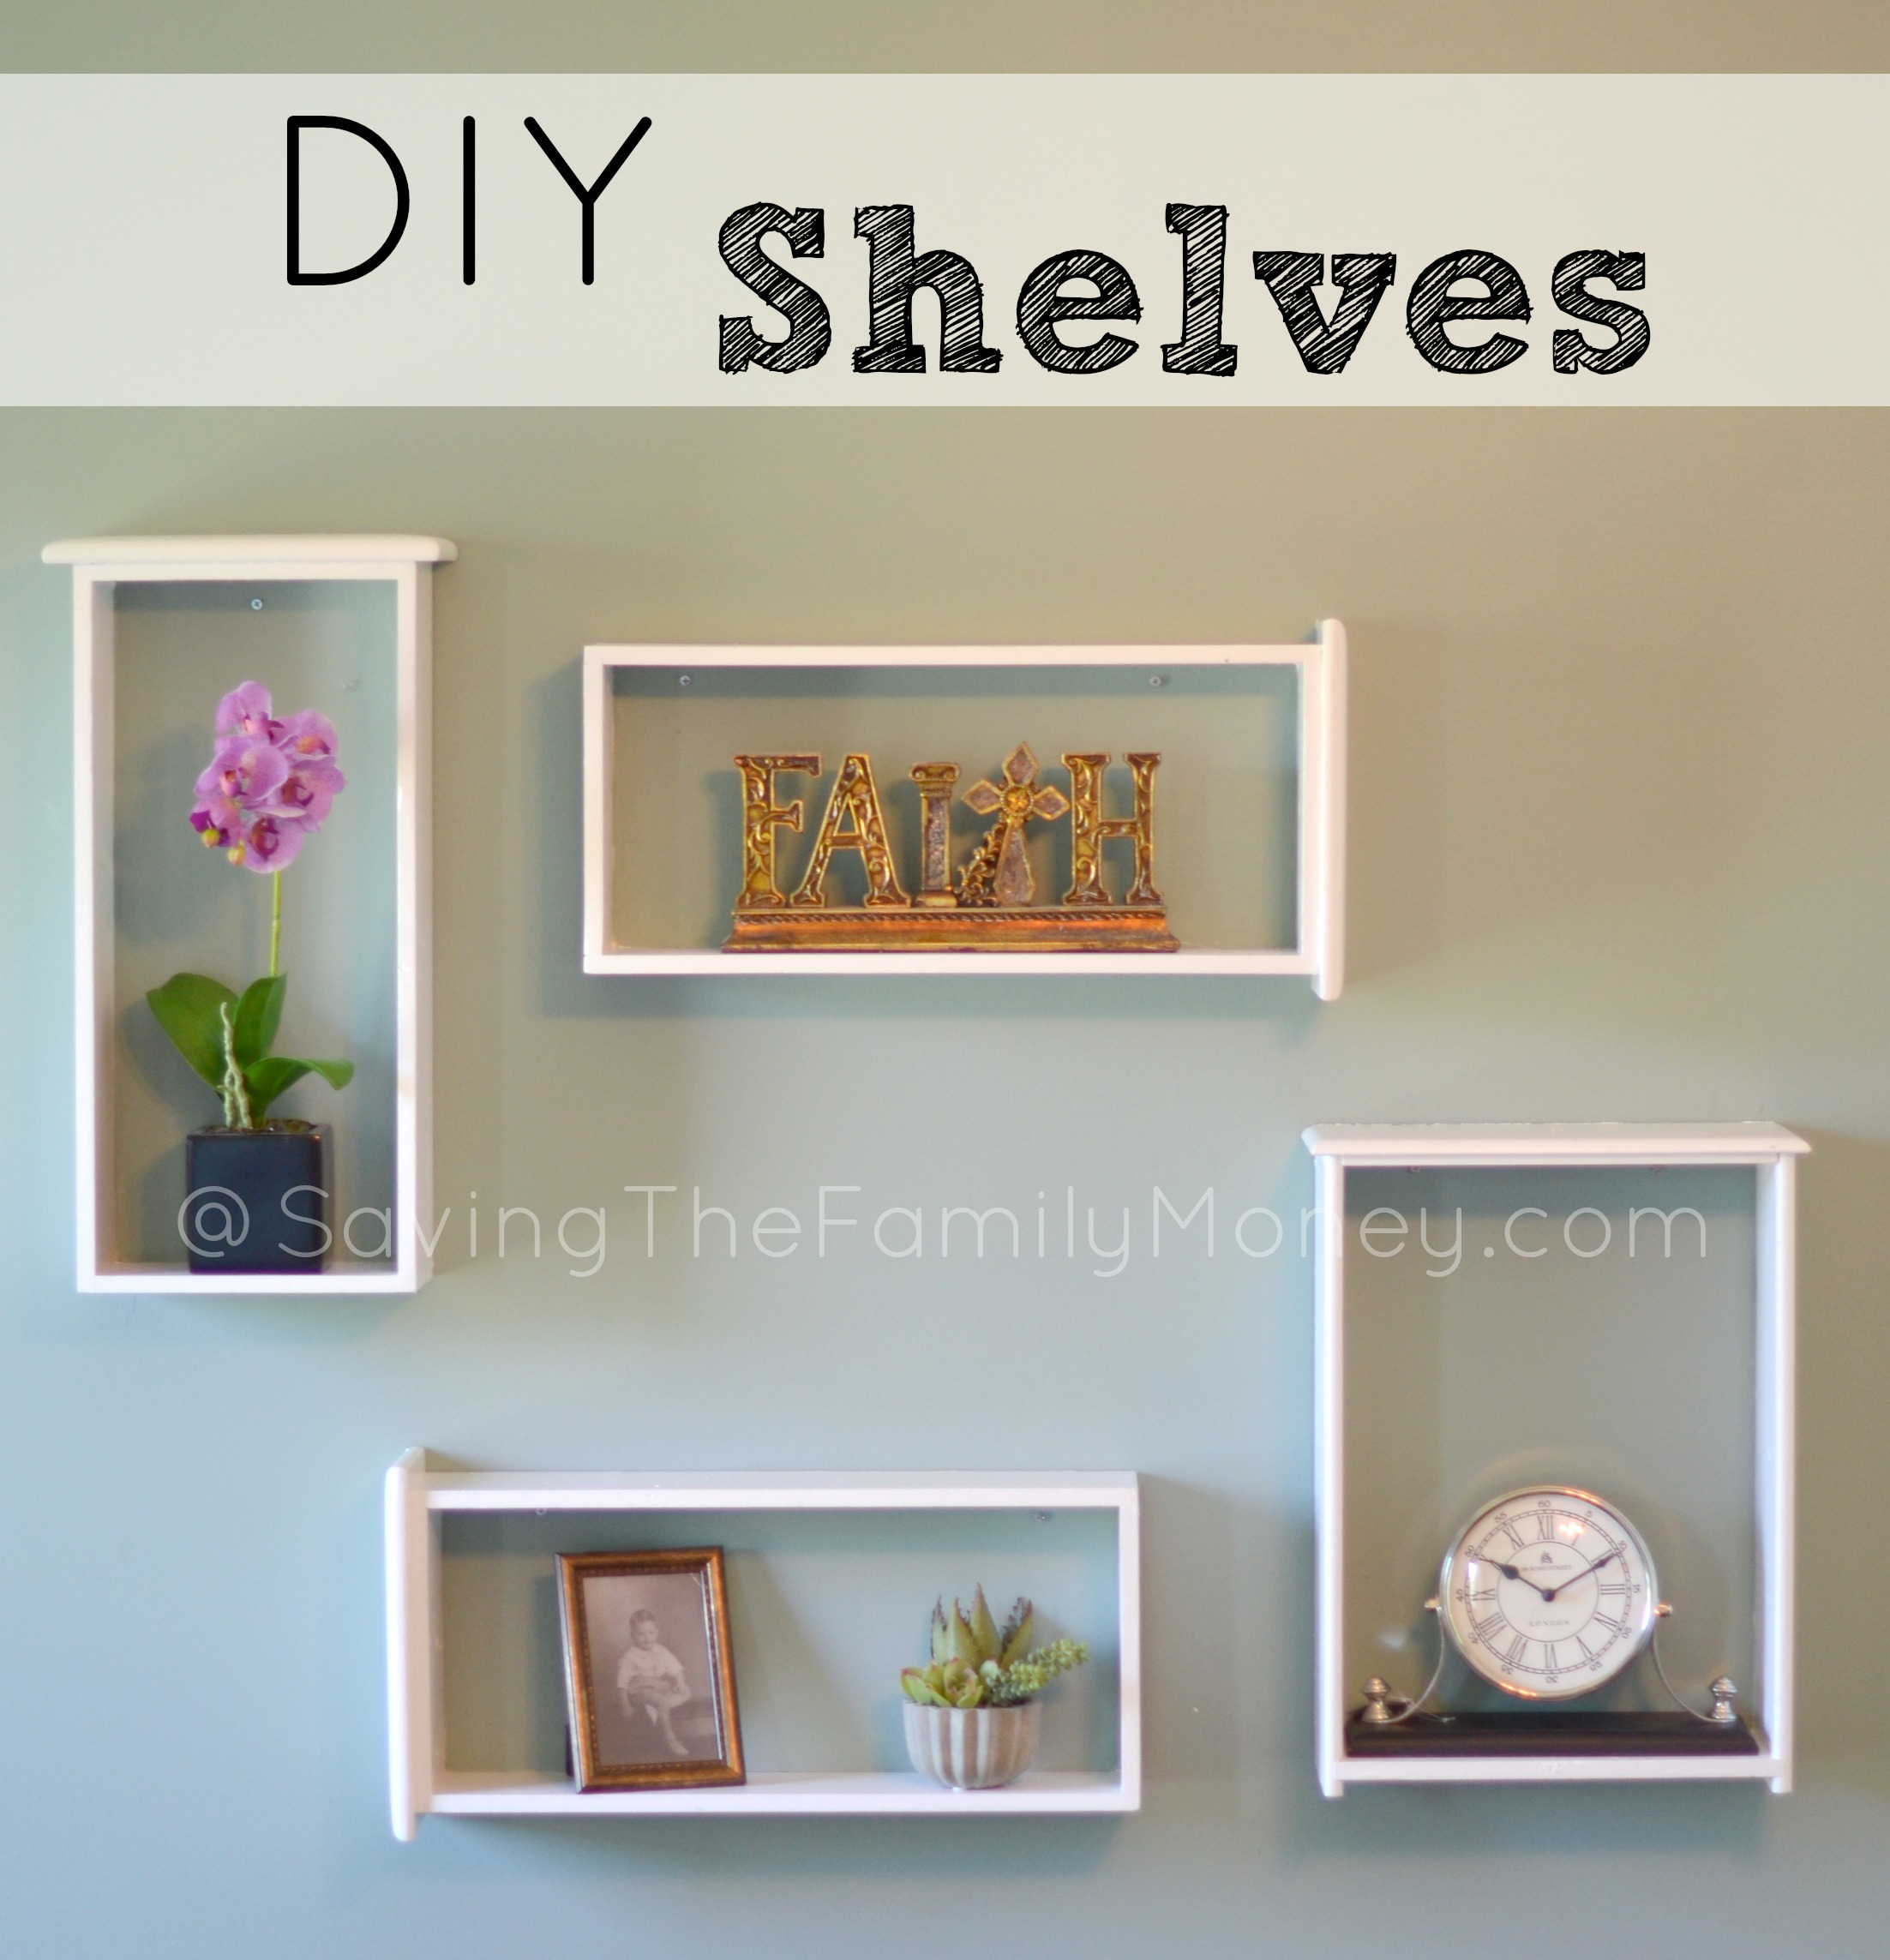 DIY Drawer Shelves - Top 15 Easy DIY Shelves http://thecraftiestcouple.com